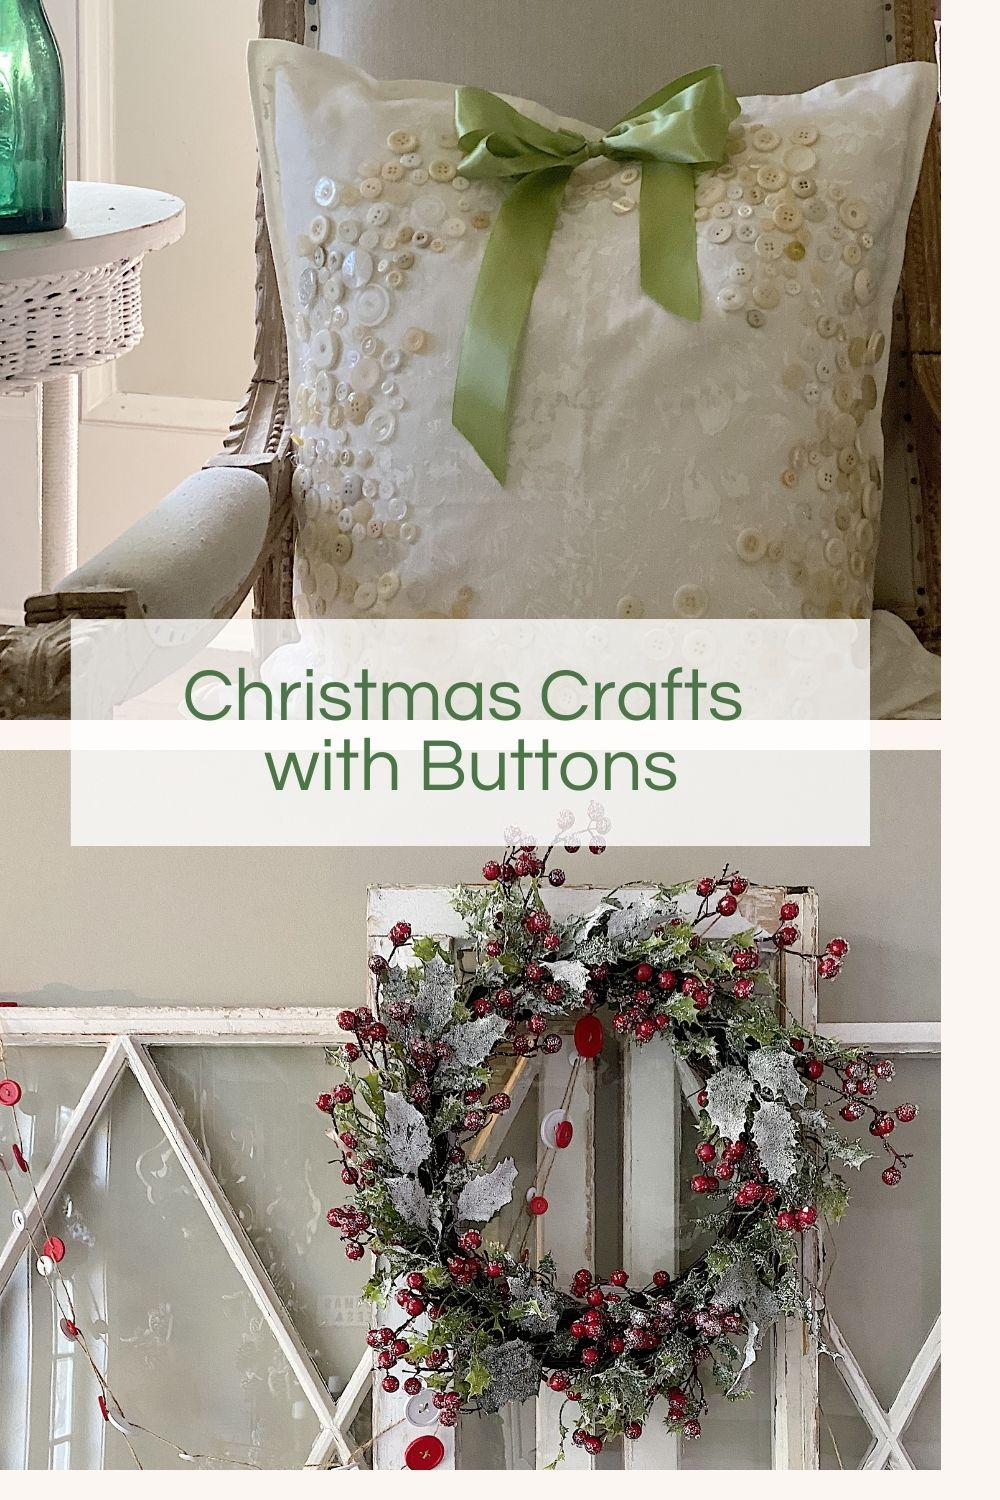 Today I made some Christmas crafts with buttons. I came up with these ideas because I wanted to create a few holiday crafts from items I already owned.